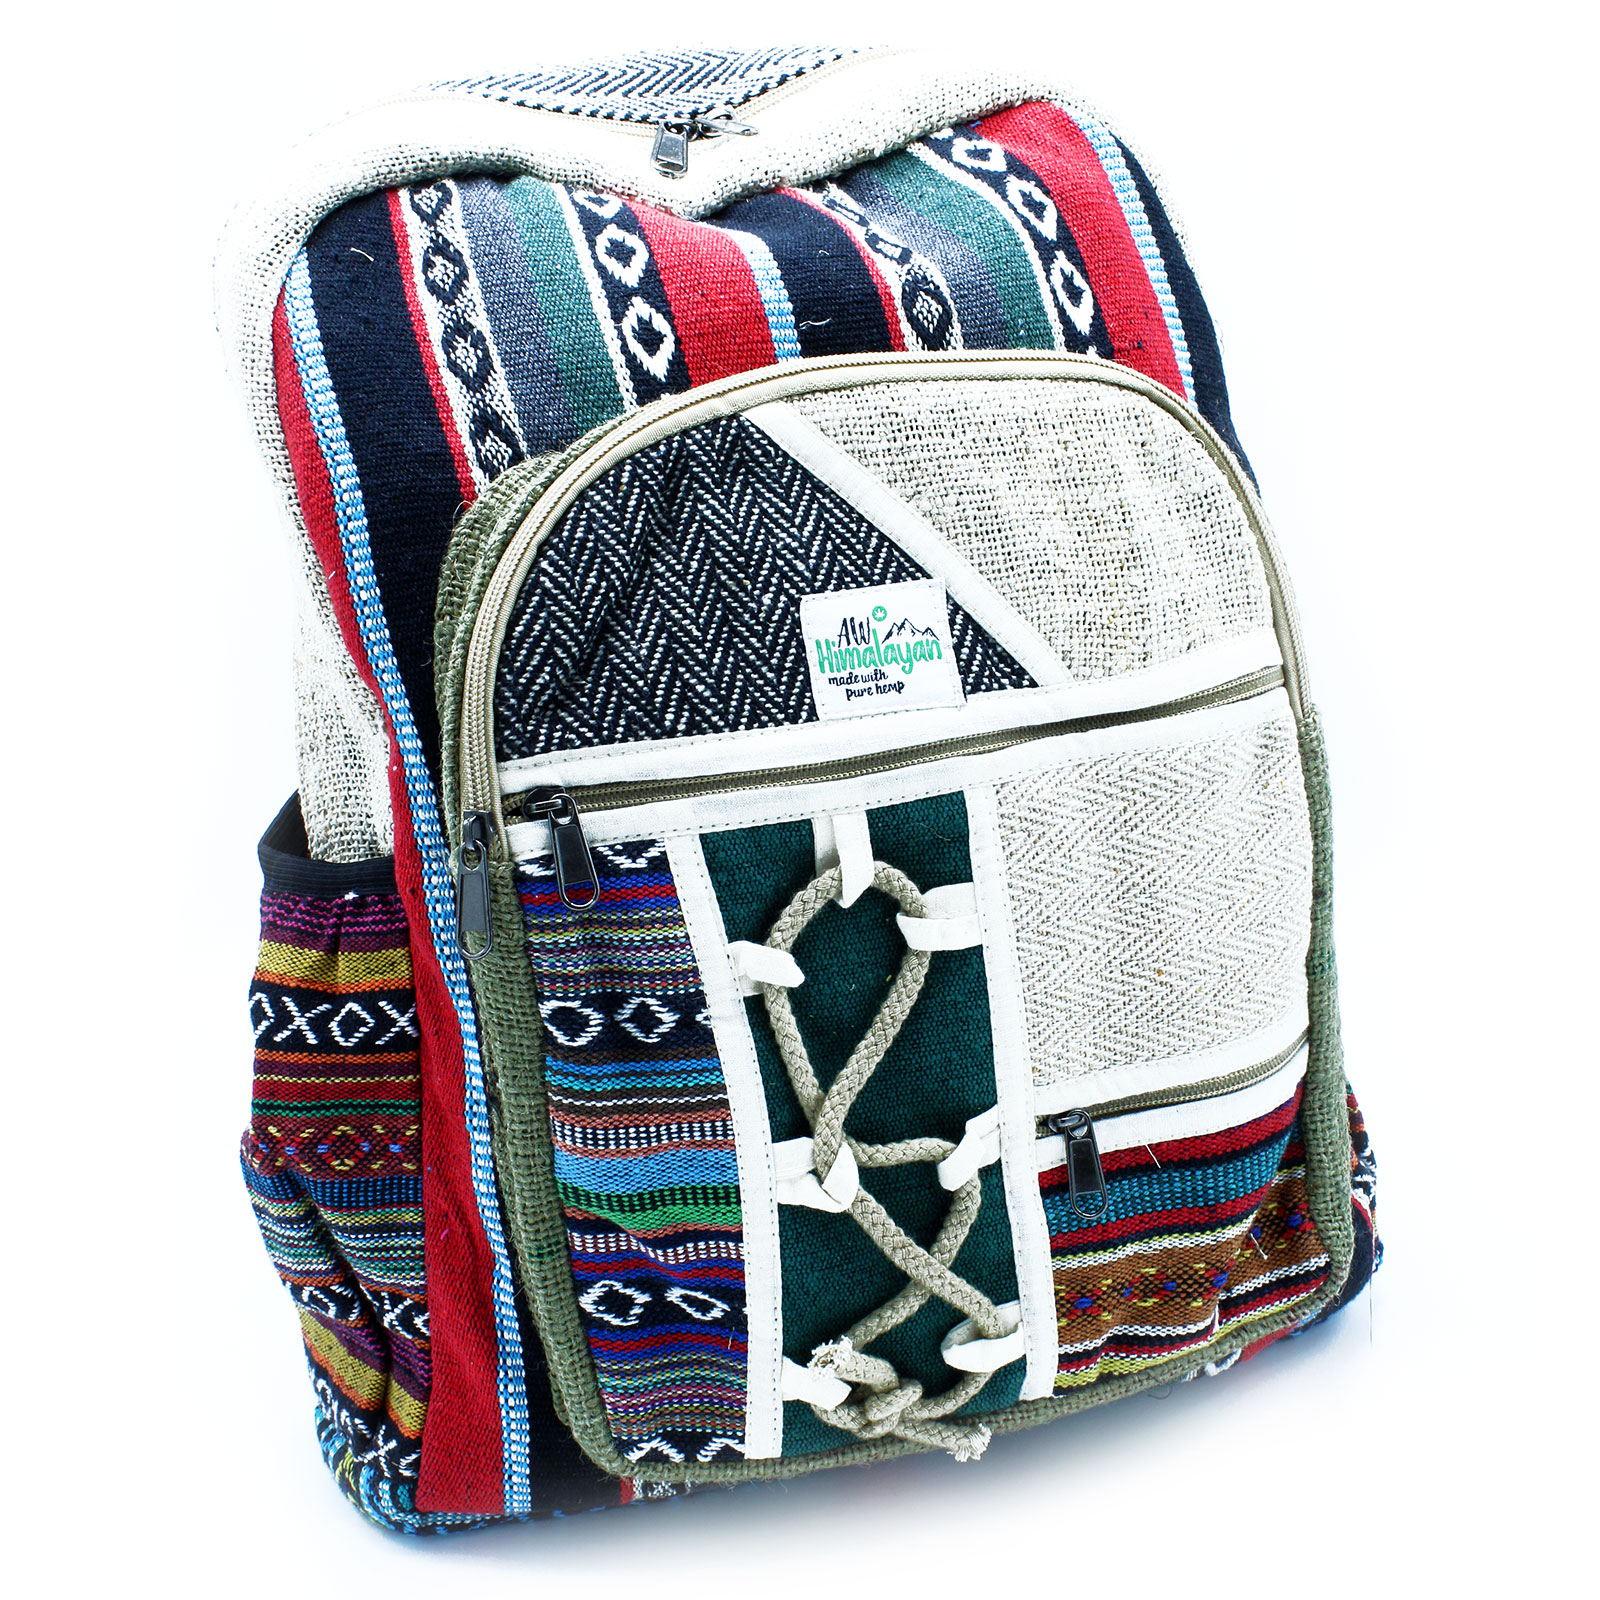 Large Backpack Rope and Pockets Style